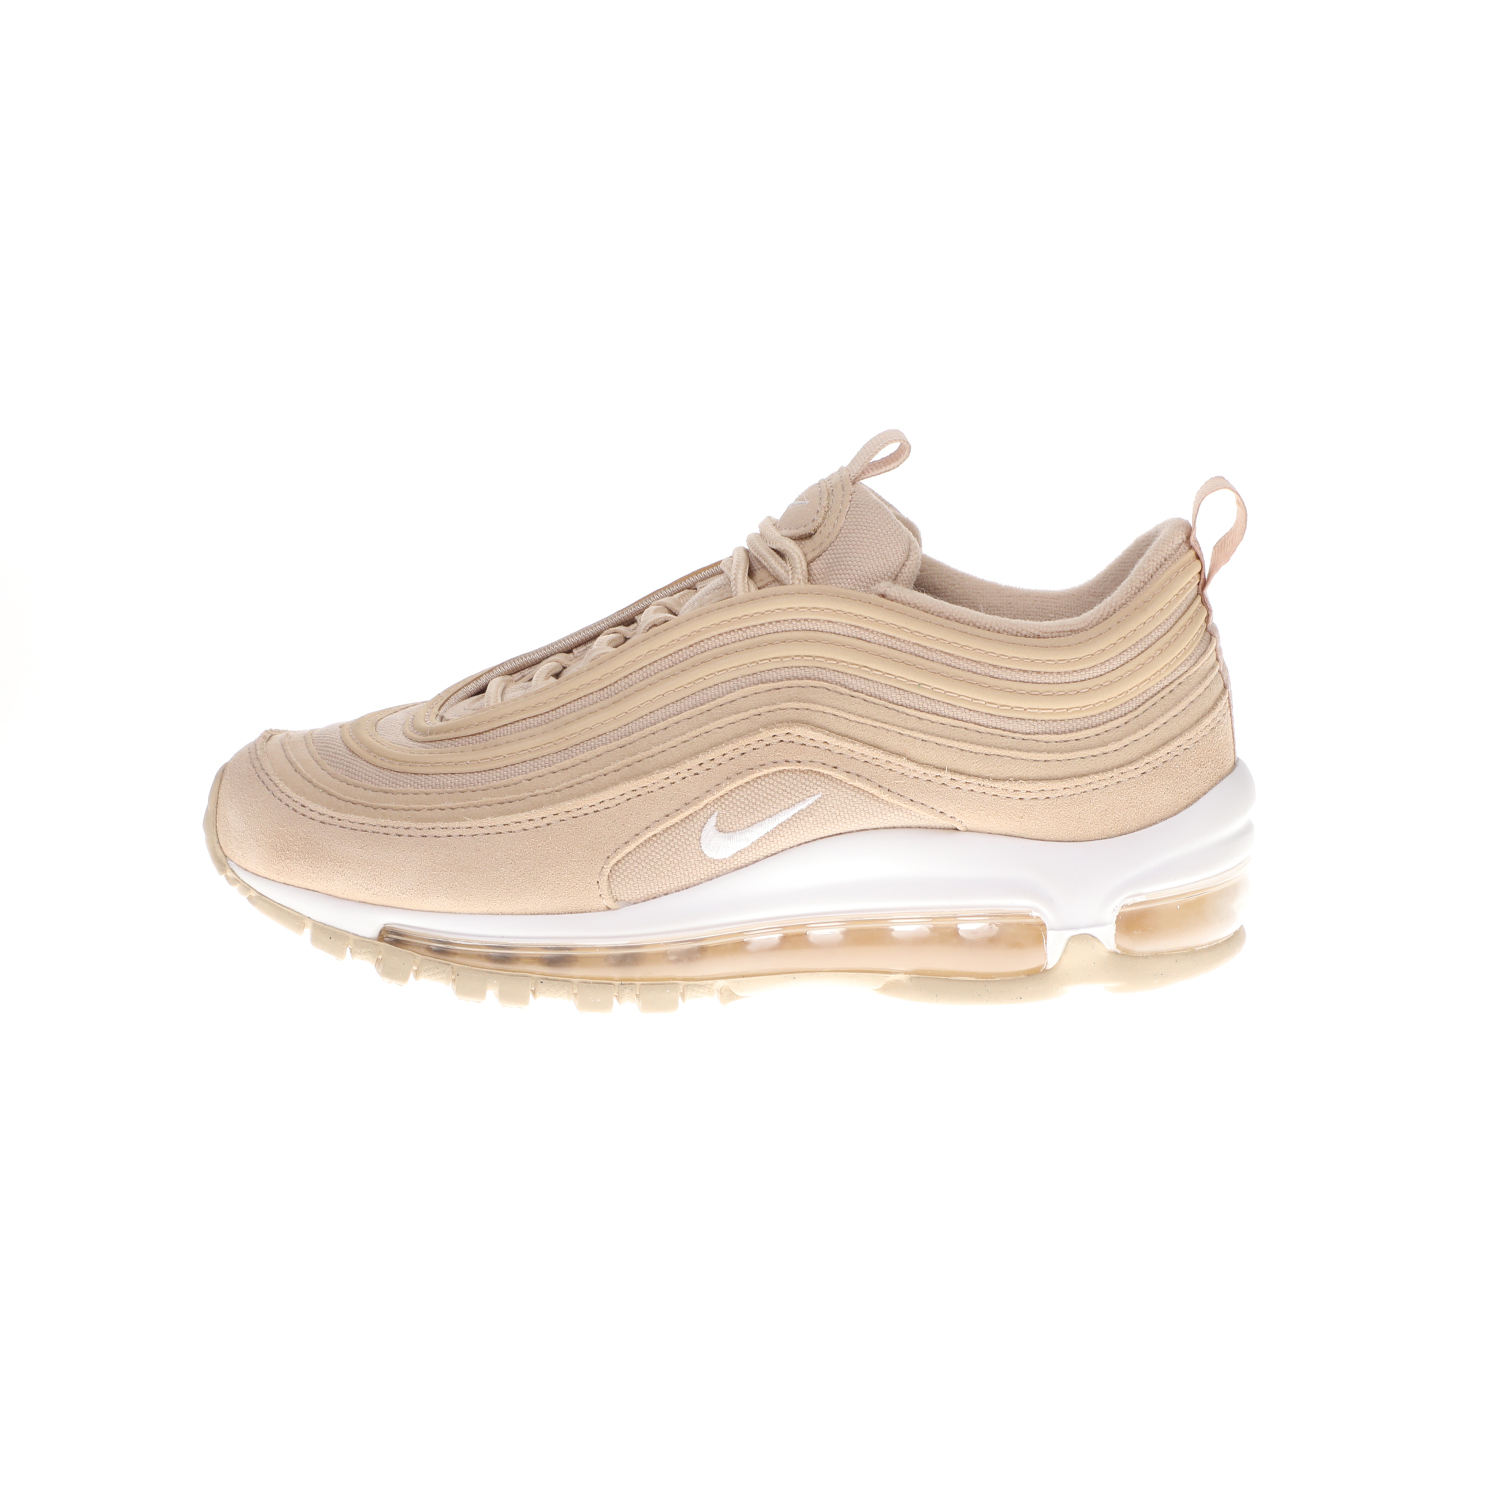 NIKE – Παιδικά παπούτσια NIKE AIR MAX 97 PE μπεζ